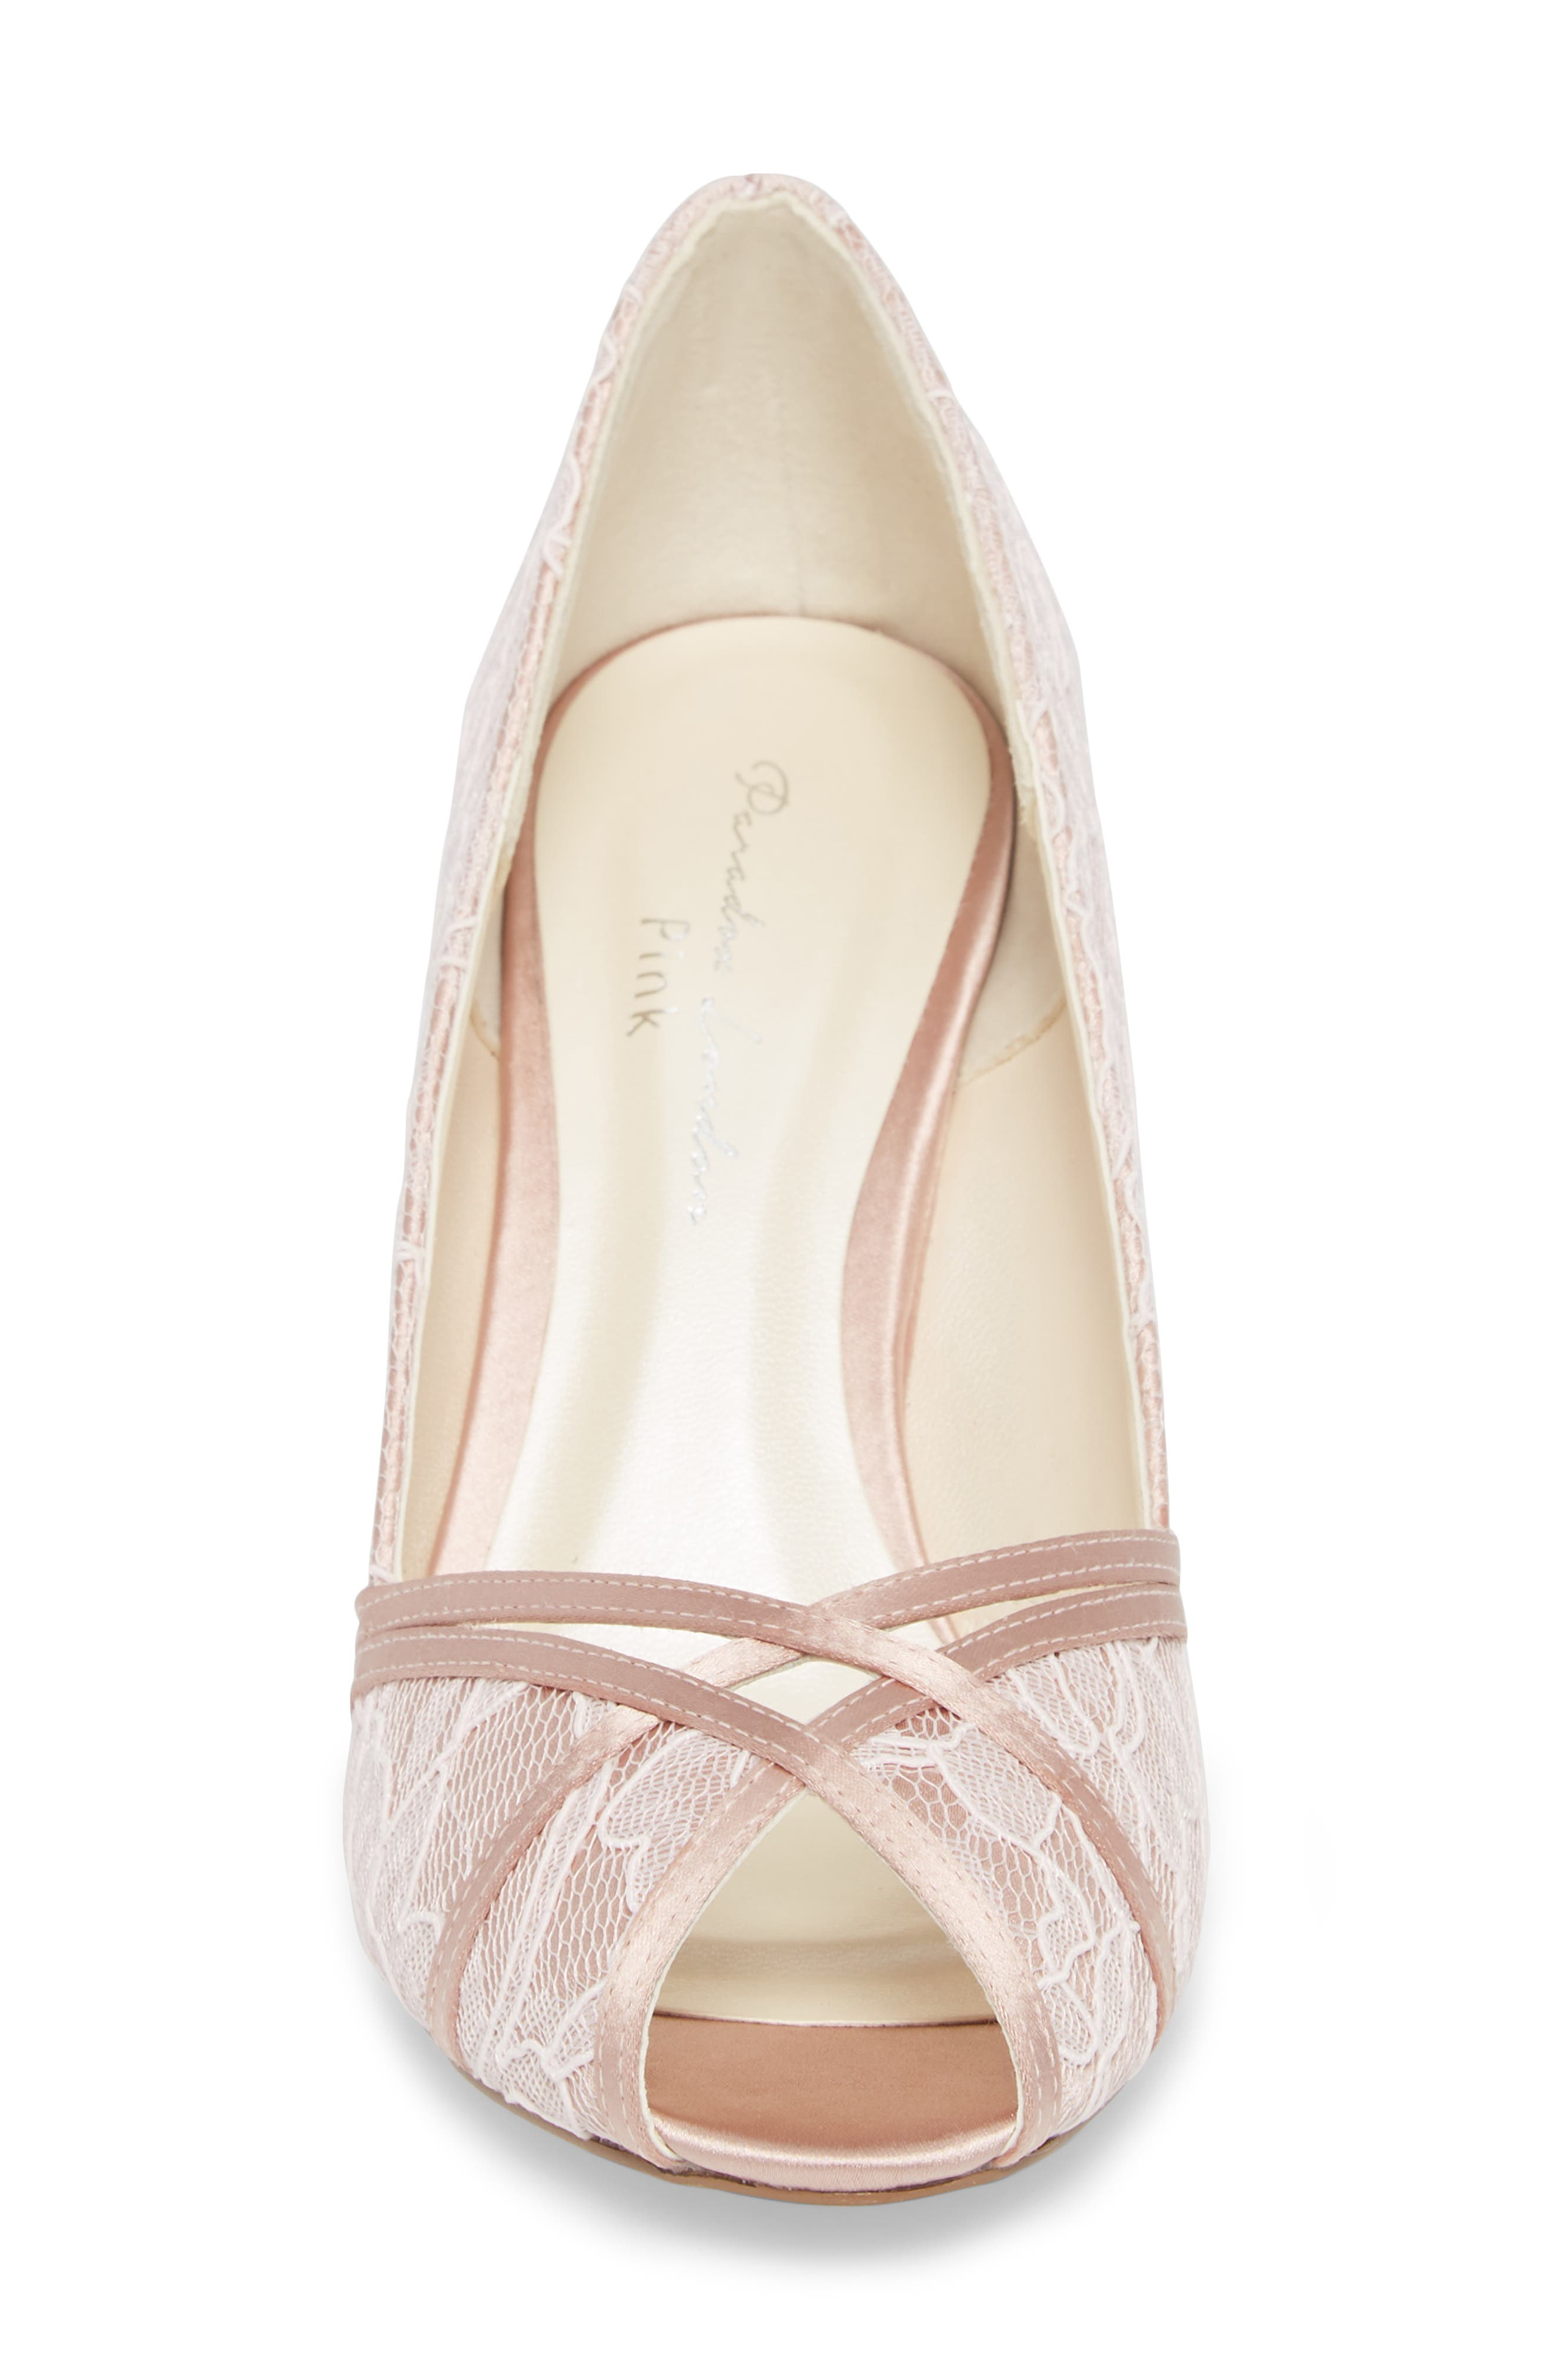 Cherie Embroidered Peep Toe Pump,                             Alternate thumbnail 4, color,                             BLUSH SATIN